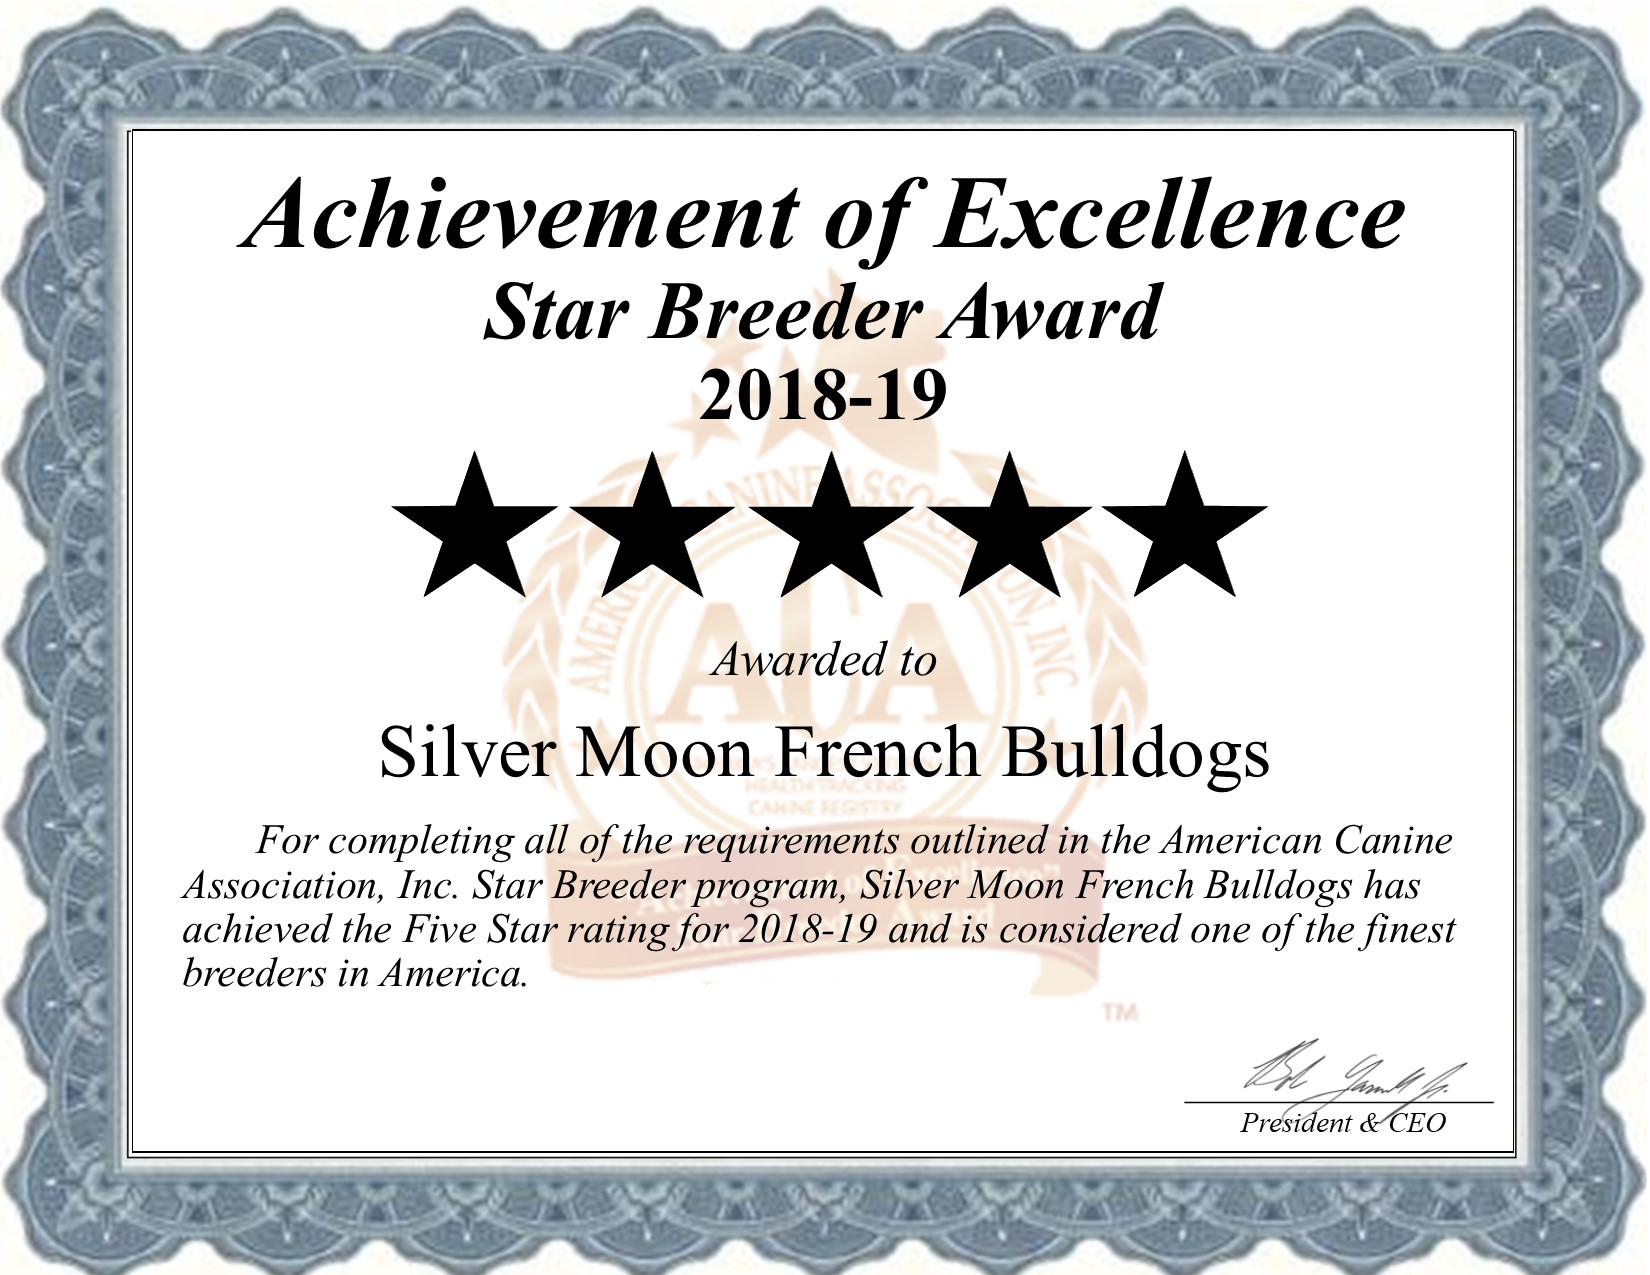 silver, moon, french, bulldogs, certificate, silver-moon, french-bulldogs, bull, dogs, dog, breeder, seymour, mo, missouri, pup, pups, puppies, USDA, Licensed, Inspected, license, number, kennel, puppies, litter, agriculture, department, dept, dogs, star, breeders, USA, loving, American, Canine, Association, Program, Dog, ACA, breeding, litter, application, registration, requirements, records, shows, education, puppymill, breeder, mill